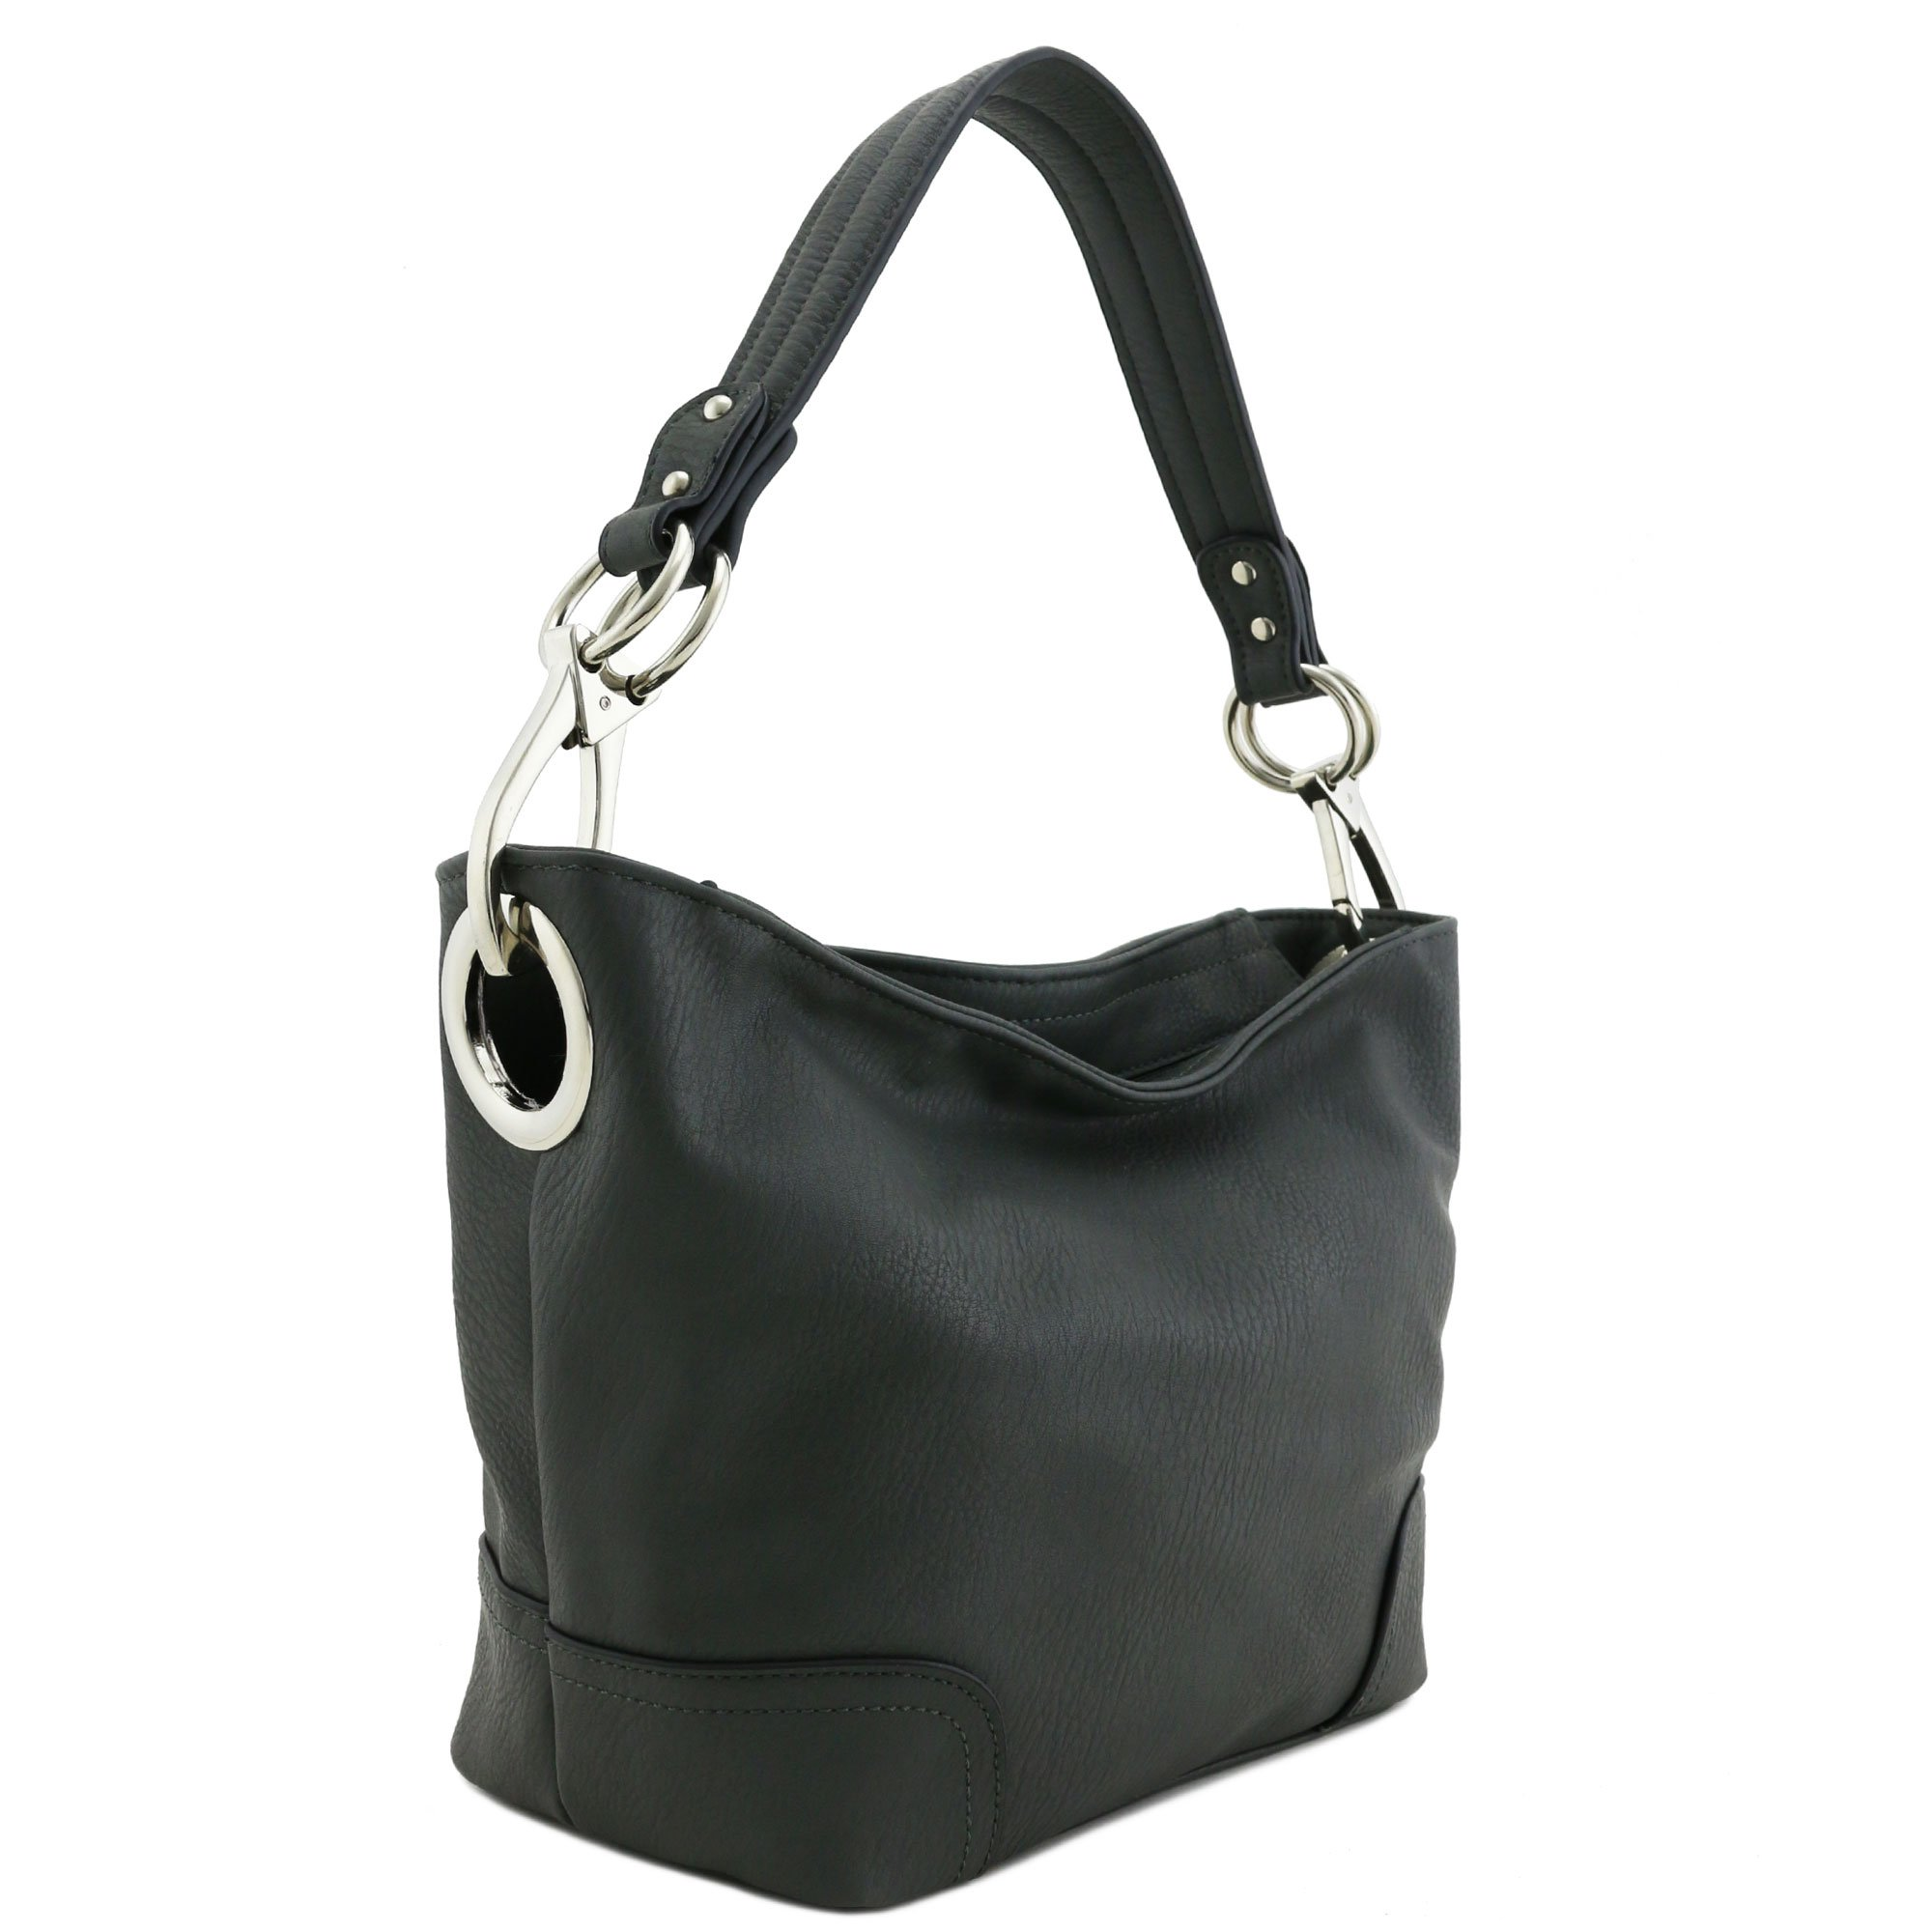 Hobo Shoulder Bag with Snap Hook Hardware Small (Charcoal Grey)